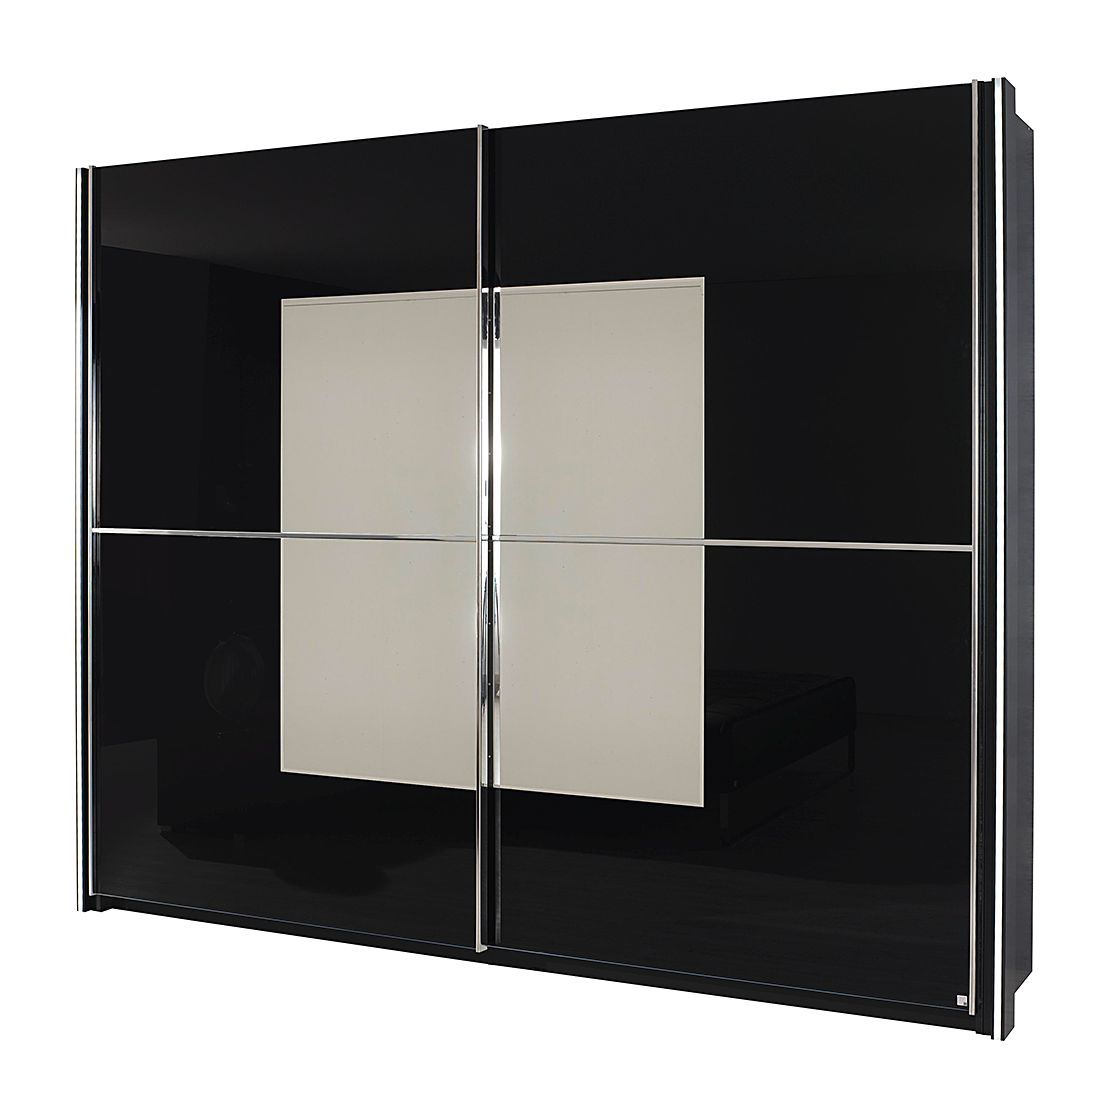 schwebet renschrank nala schwarze glasfront mit spiegelauflage schrankbreite 270 cm mit. Black Bedroom Furniture Sets. Home Design Ideas